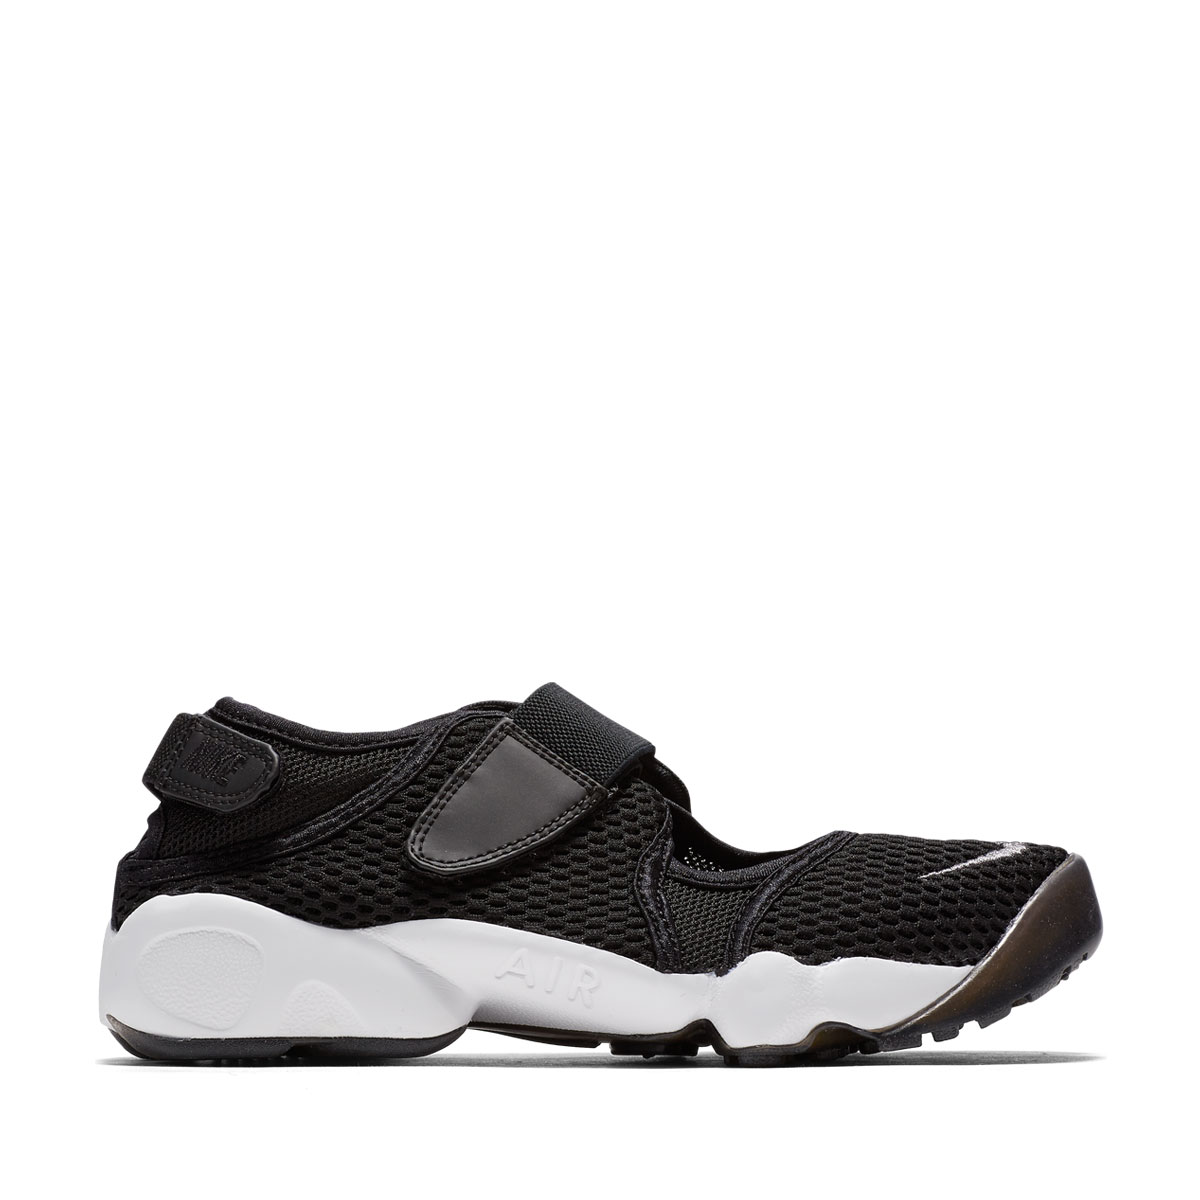 info for e6ea8 8752e NIKE WMNS AIR RIFT BR (BLACK COOL GREY-WHITE) (Nike women airlift breeze)